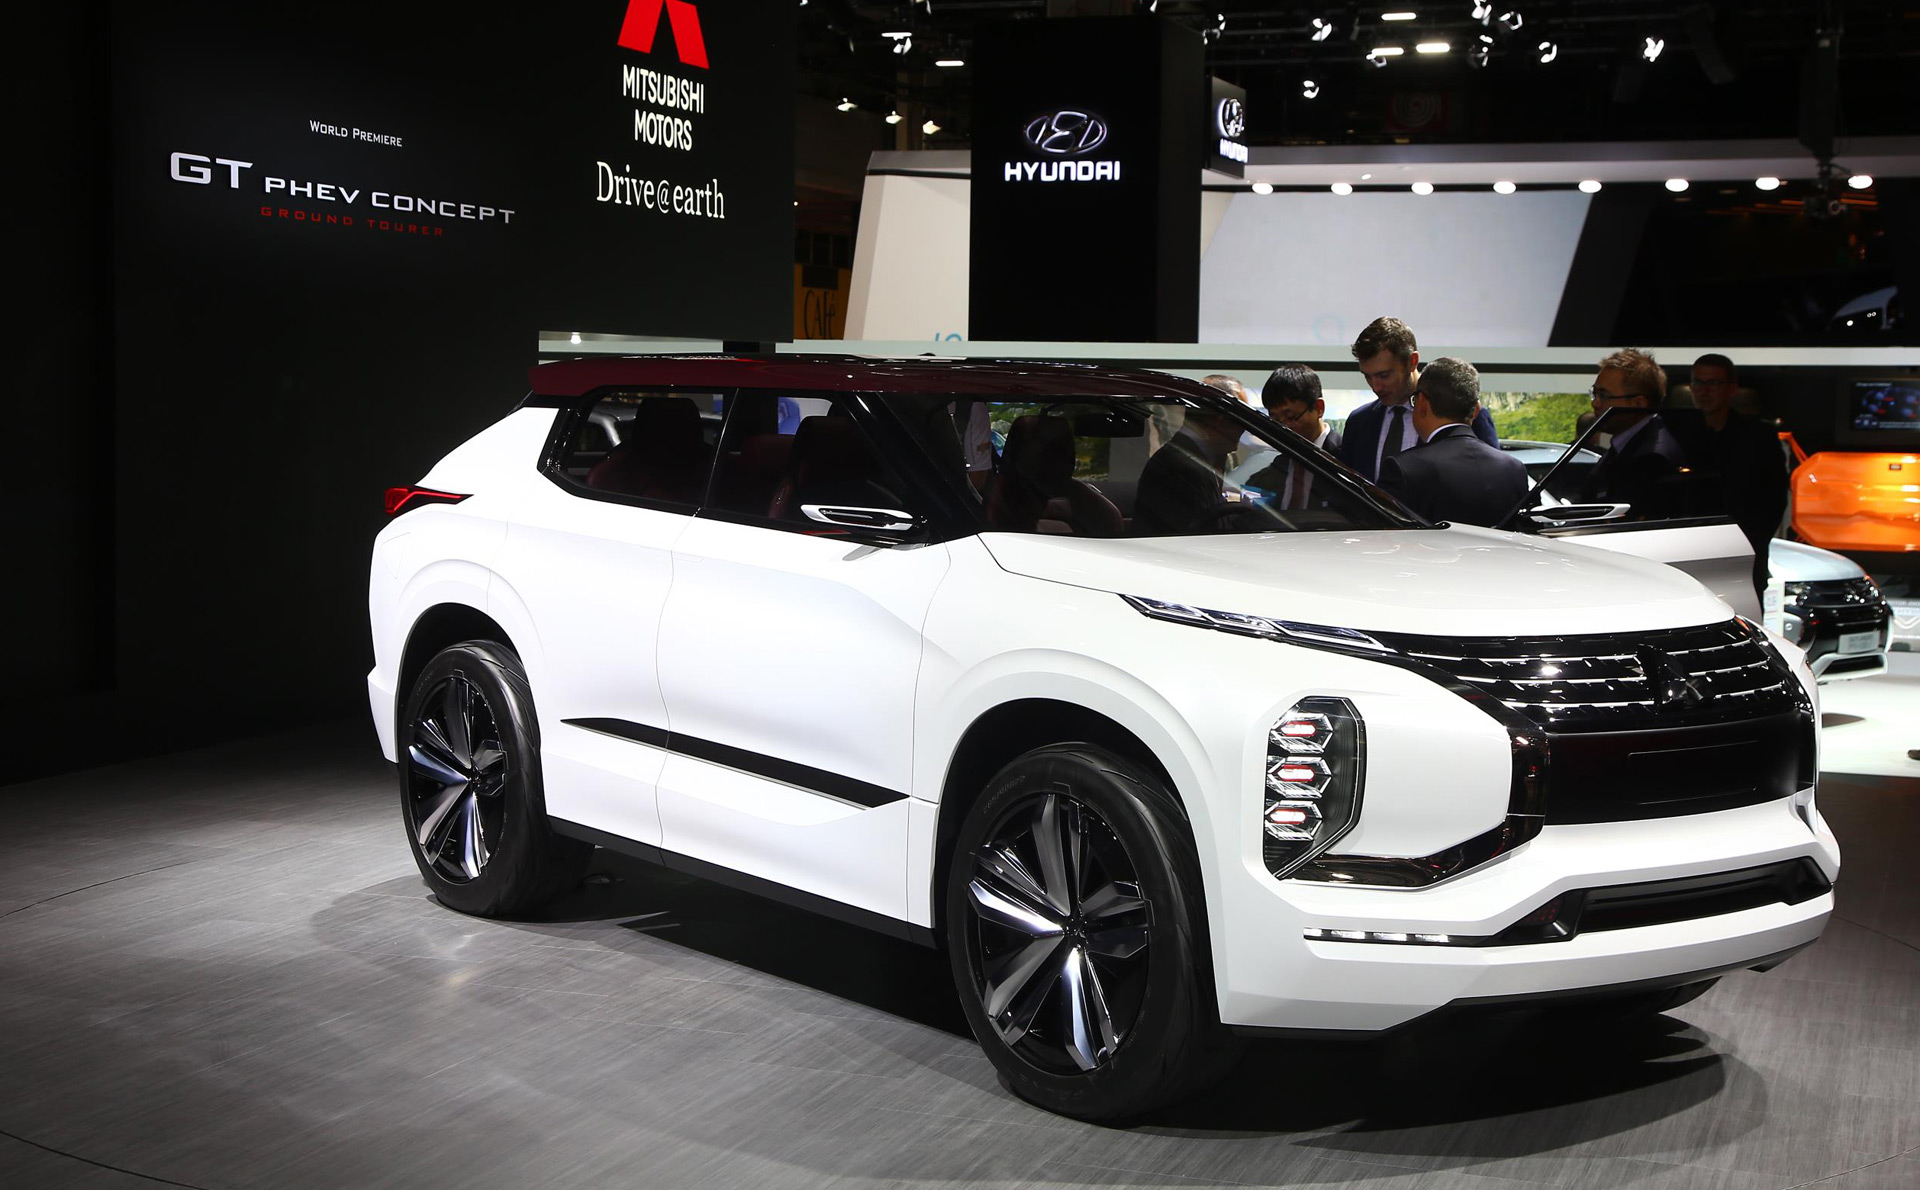 Mitsubishi Gt Phev Concept Previews Next Gen Hybrid Tech